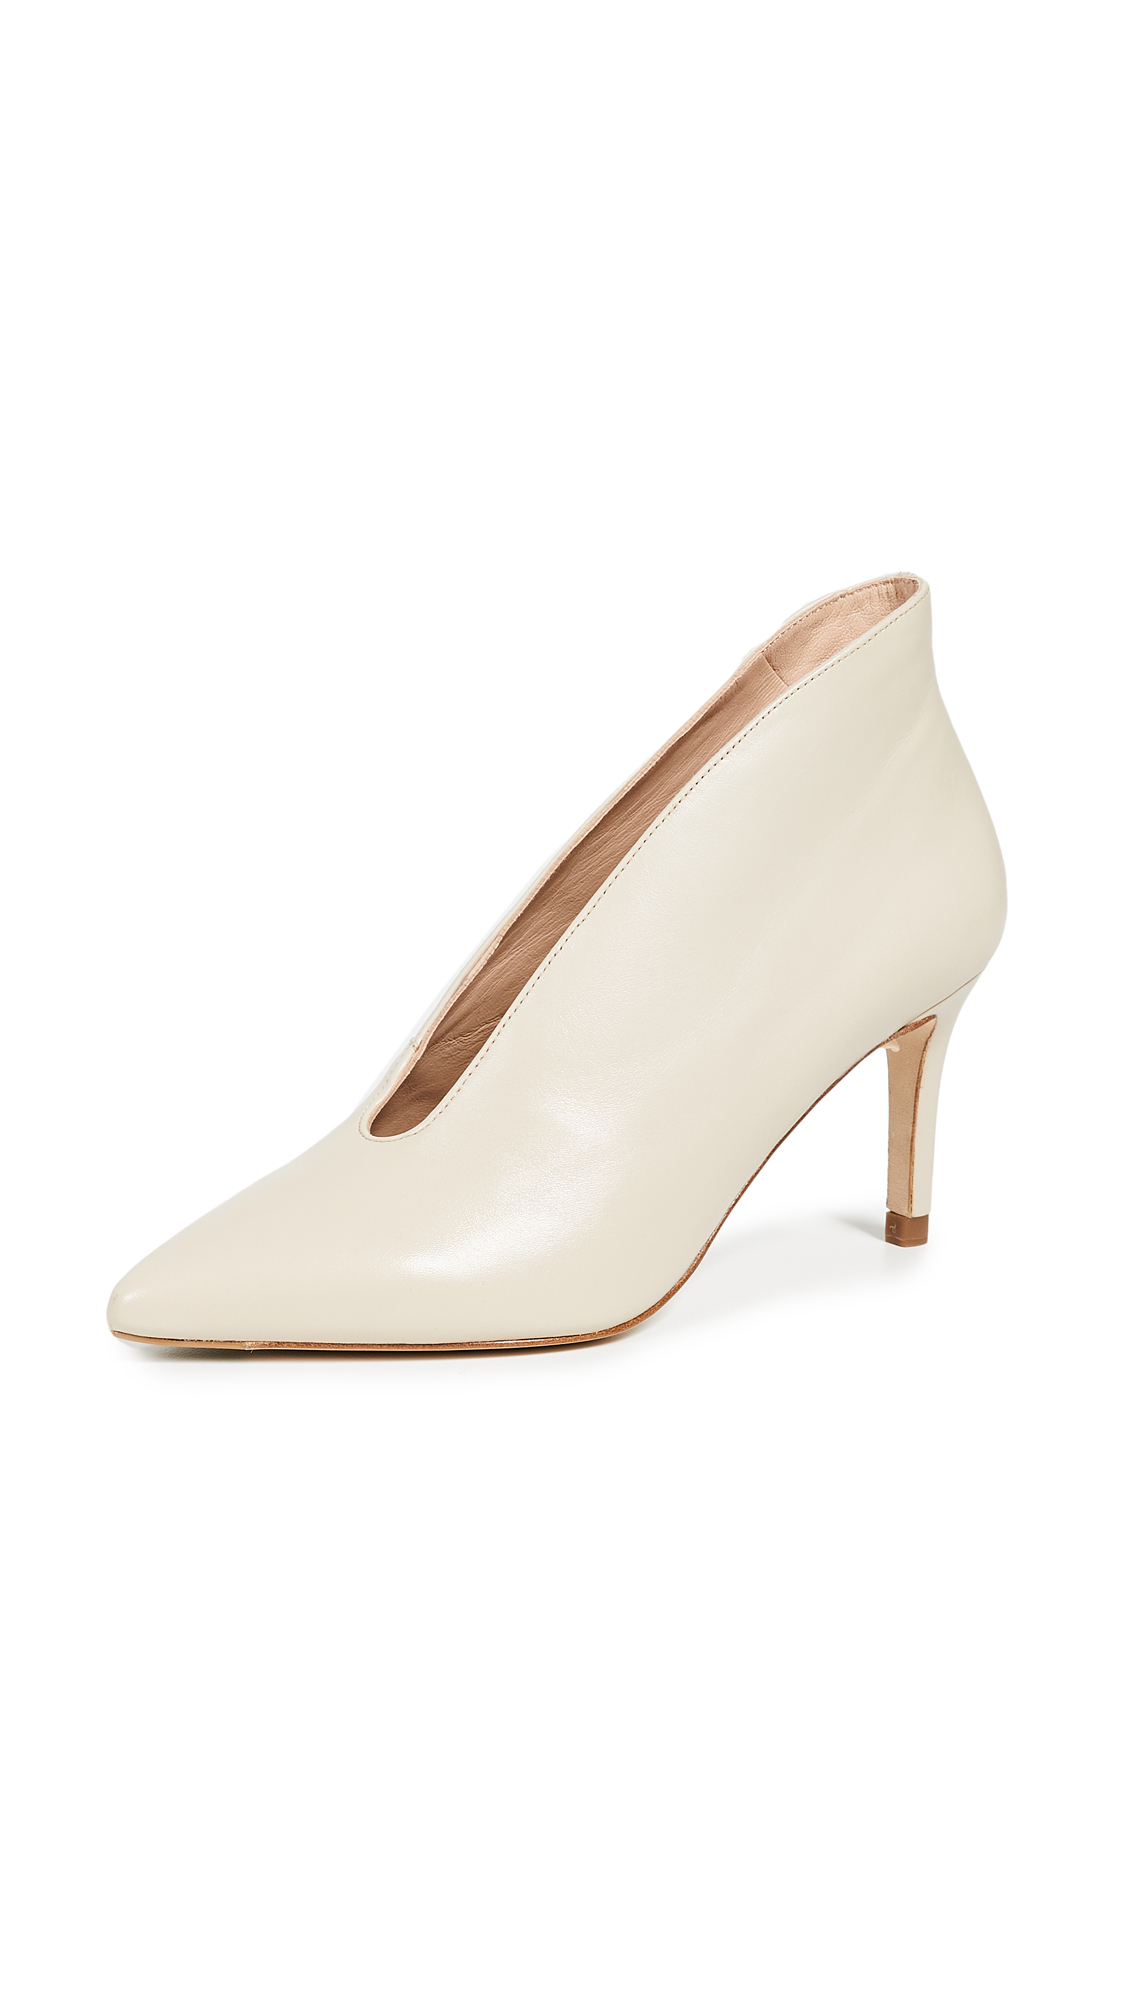 L.K. Bennett Corrina Point Toe Pumps - Bone